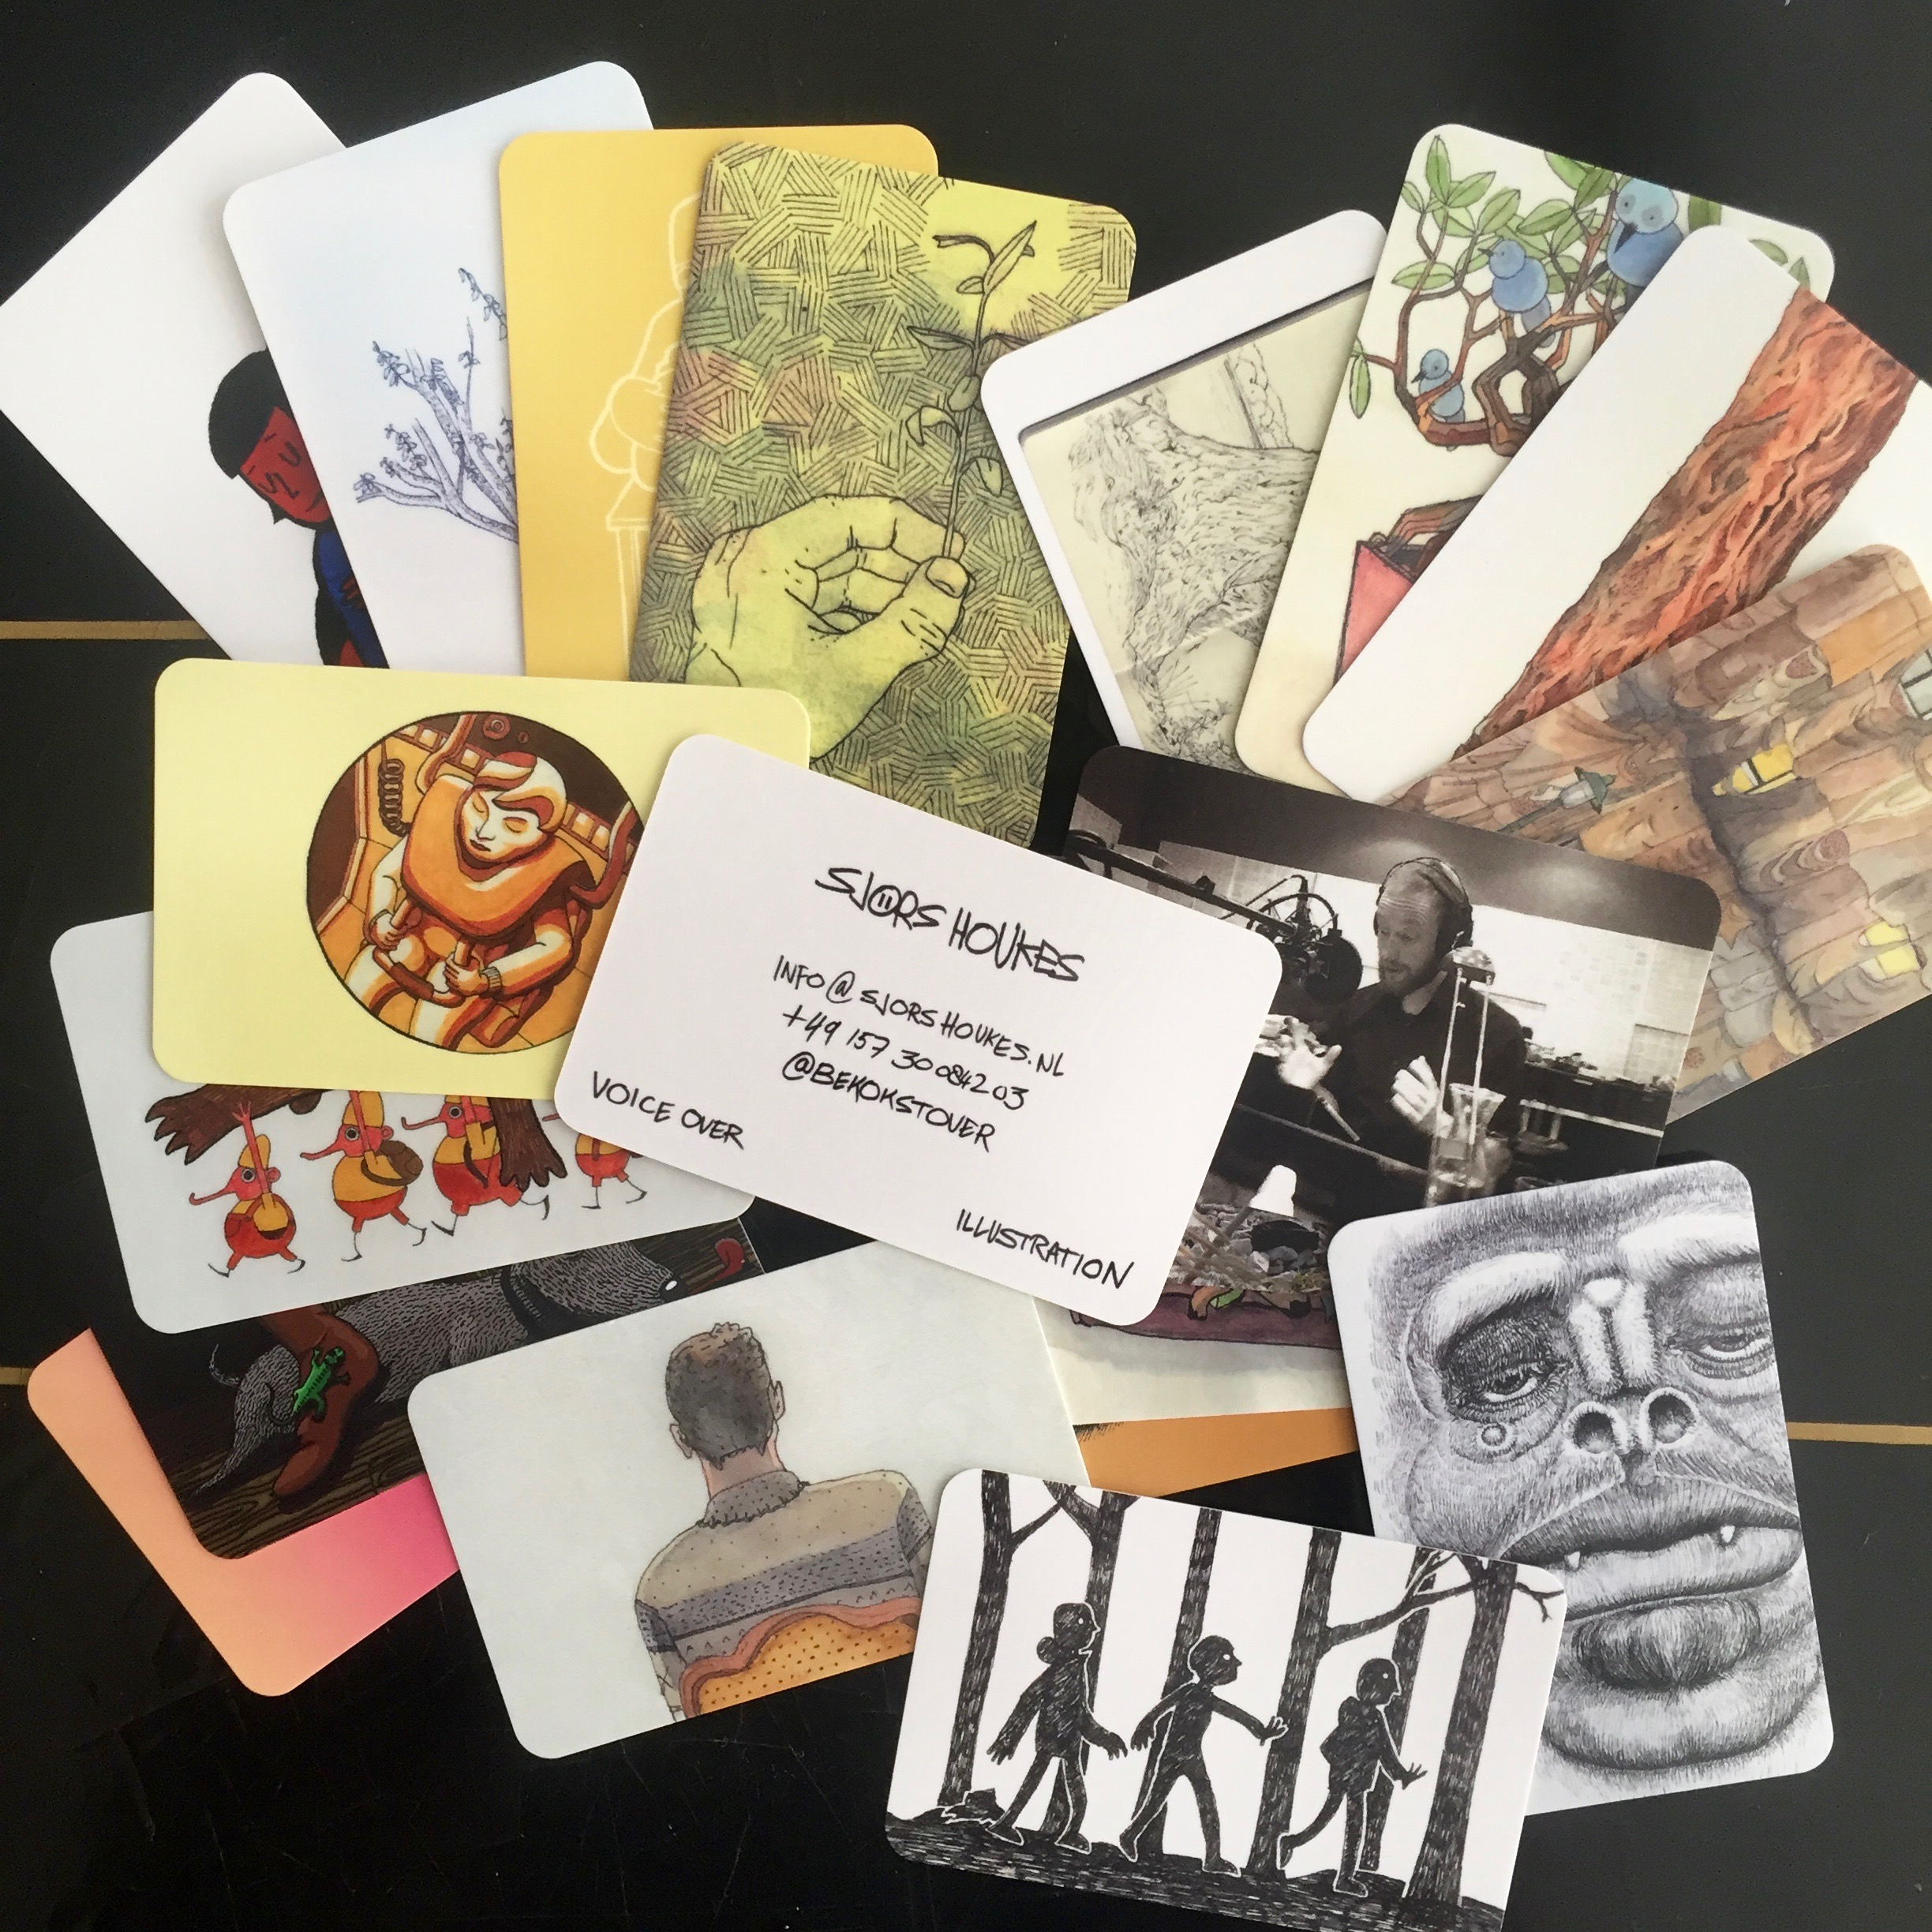 Personal business cards (2017)